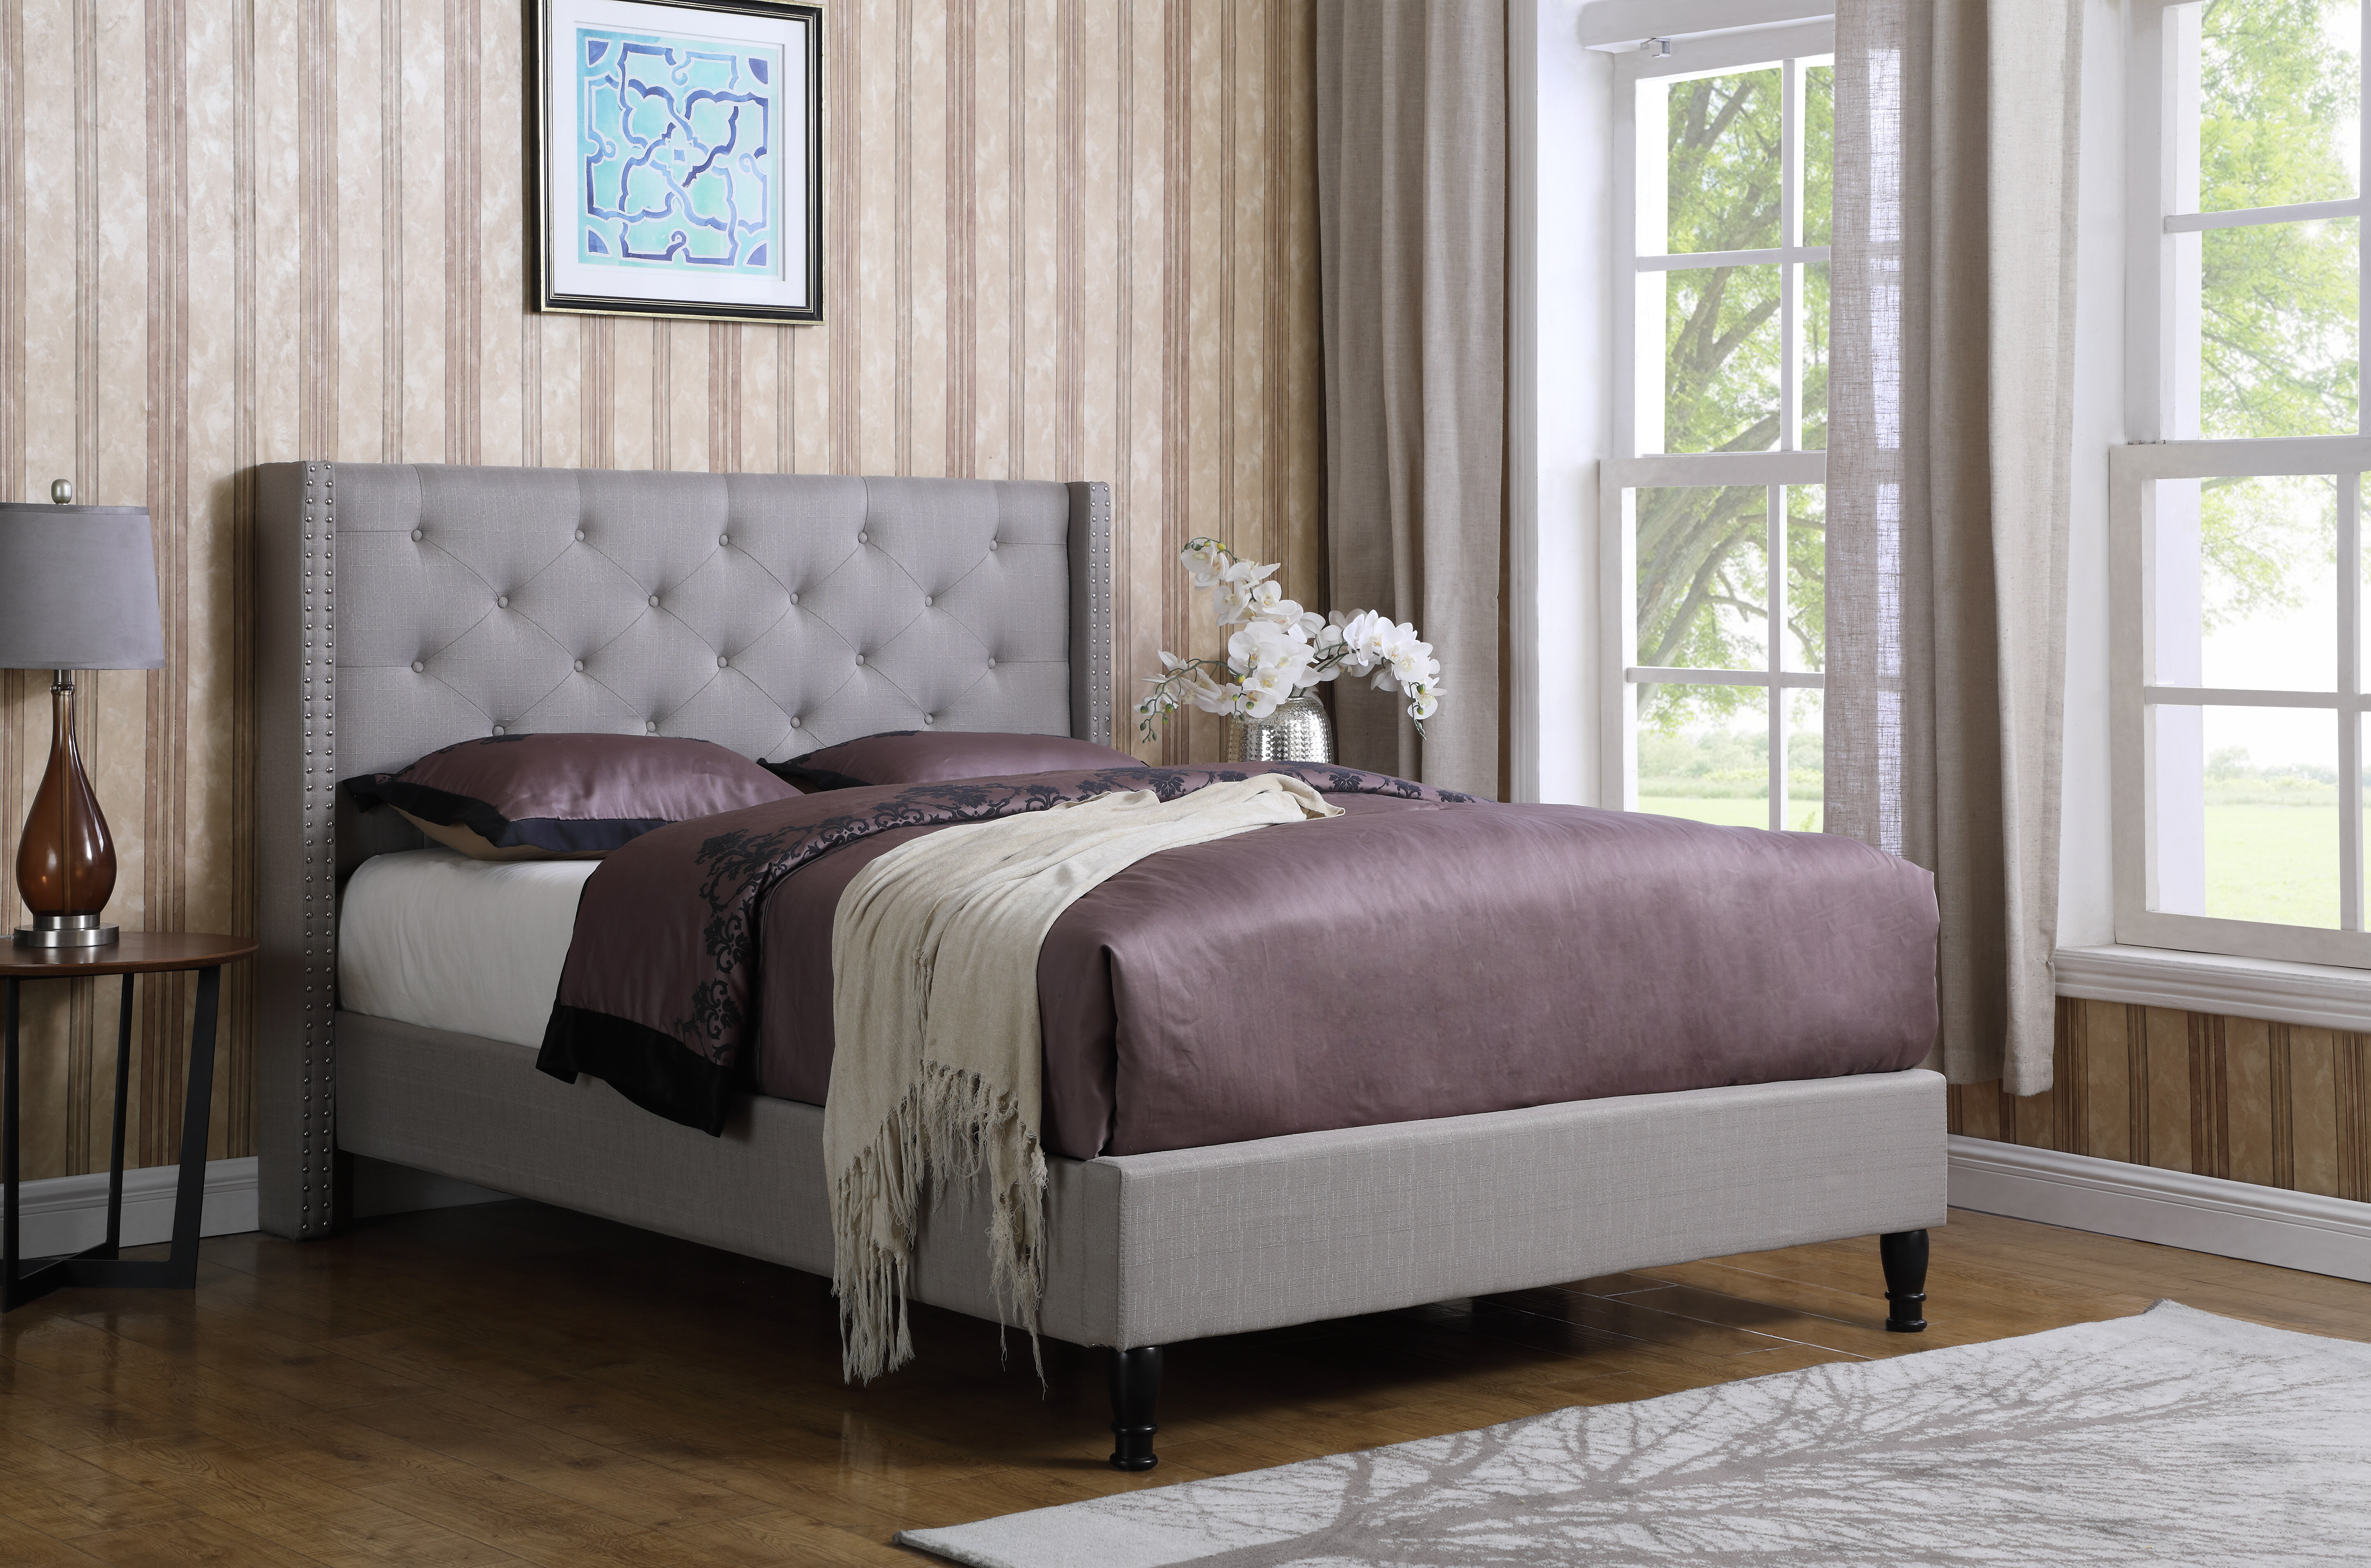 Picture of: Mercer41 Boswell Upholstered Low Profile Platform Bed Reviews Wayfair